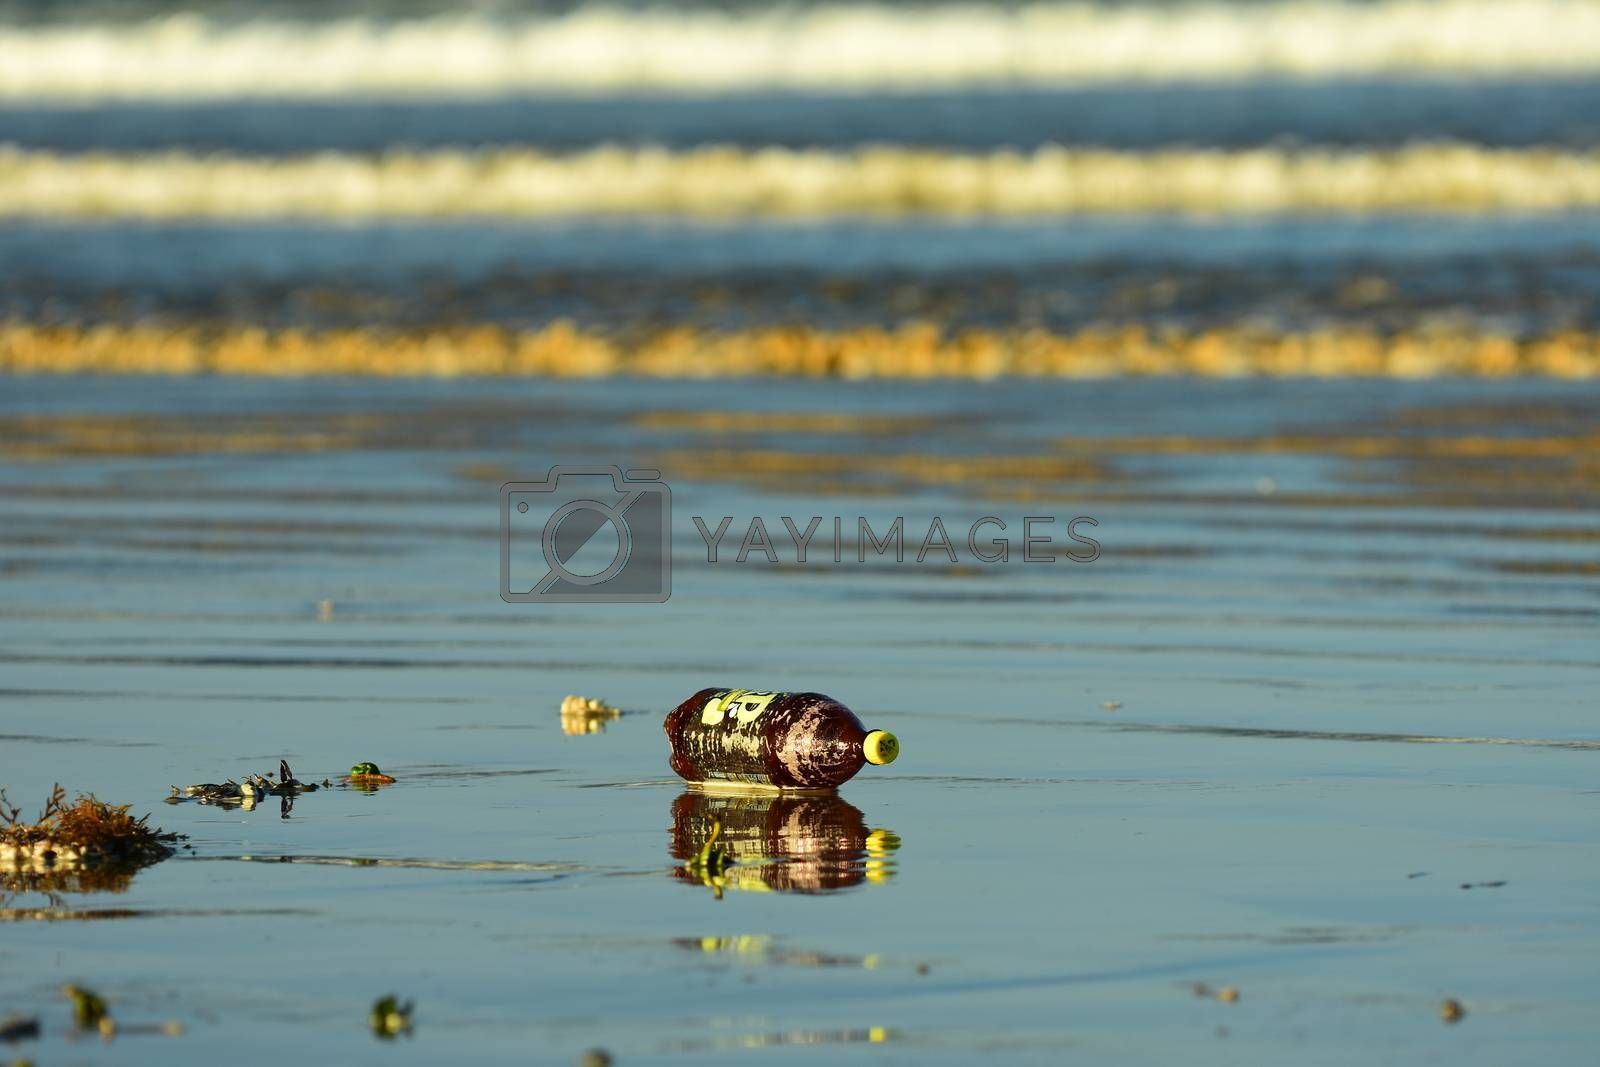 Sea pollution, with a plastic bottle washed ashore on a beach.